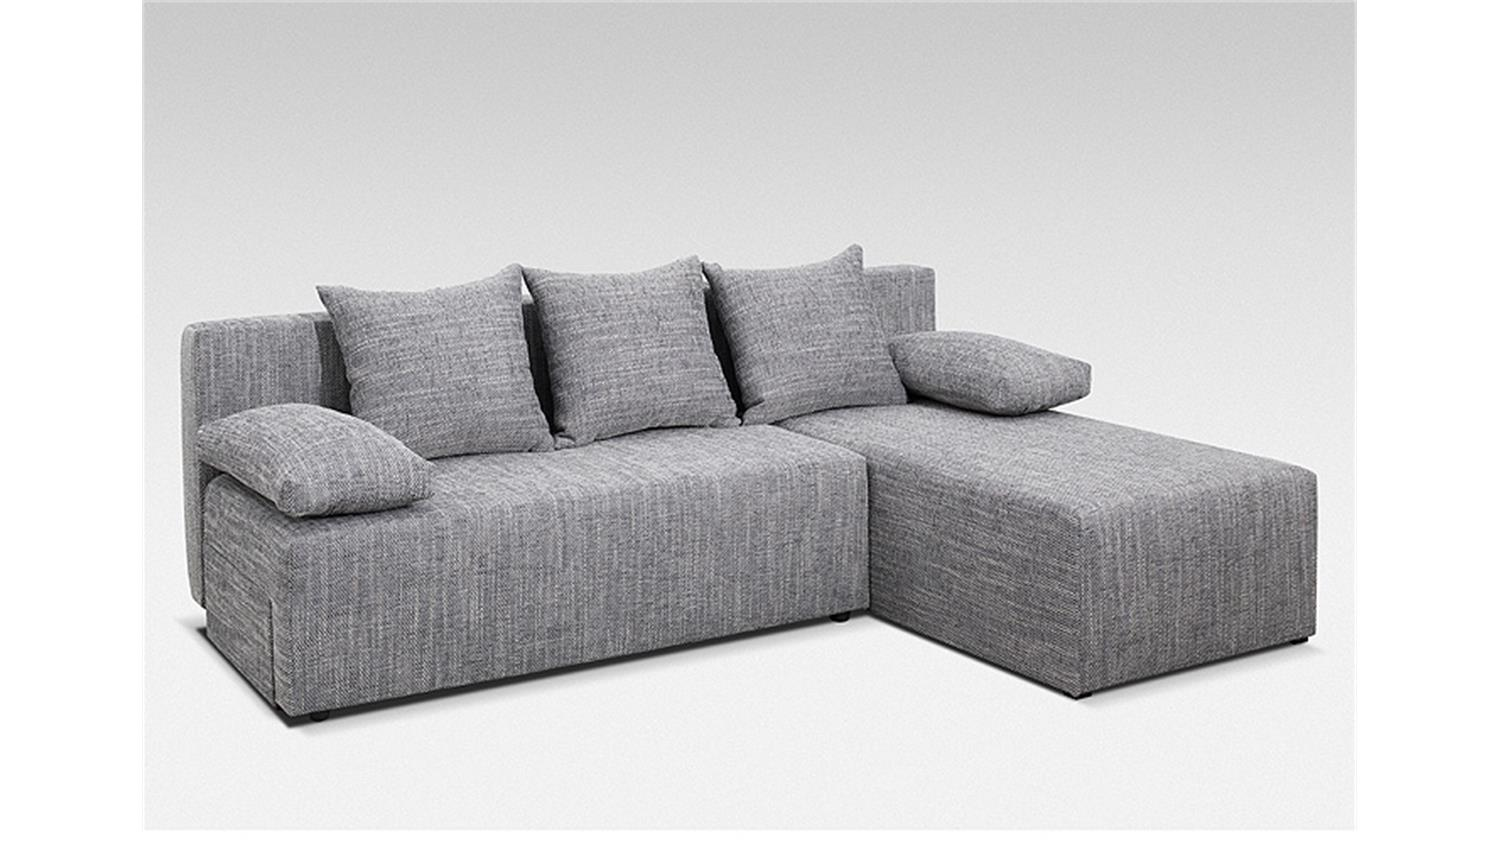 Ecksofa jolly in lawa grau mit schlaffunktion 197x150 cm for Ecksofa 150 x 200